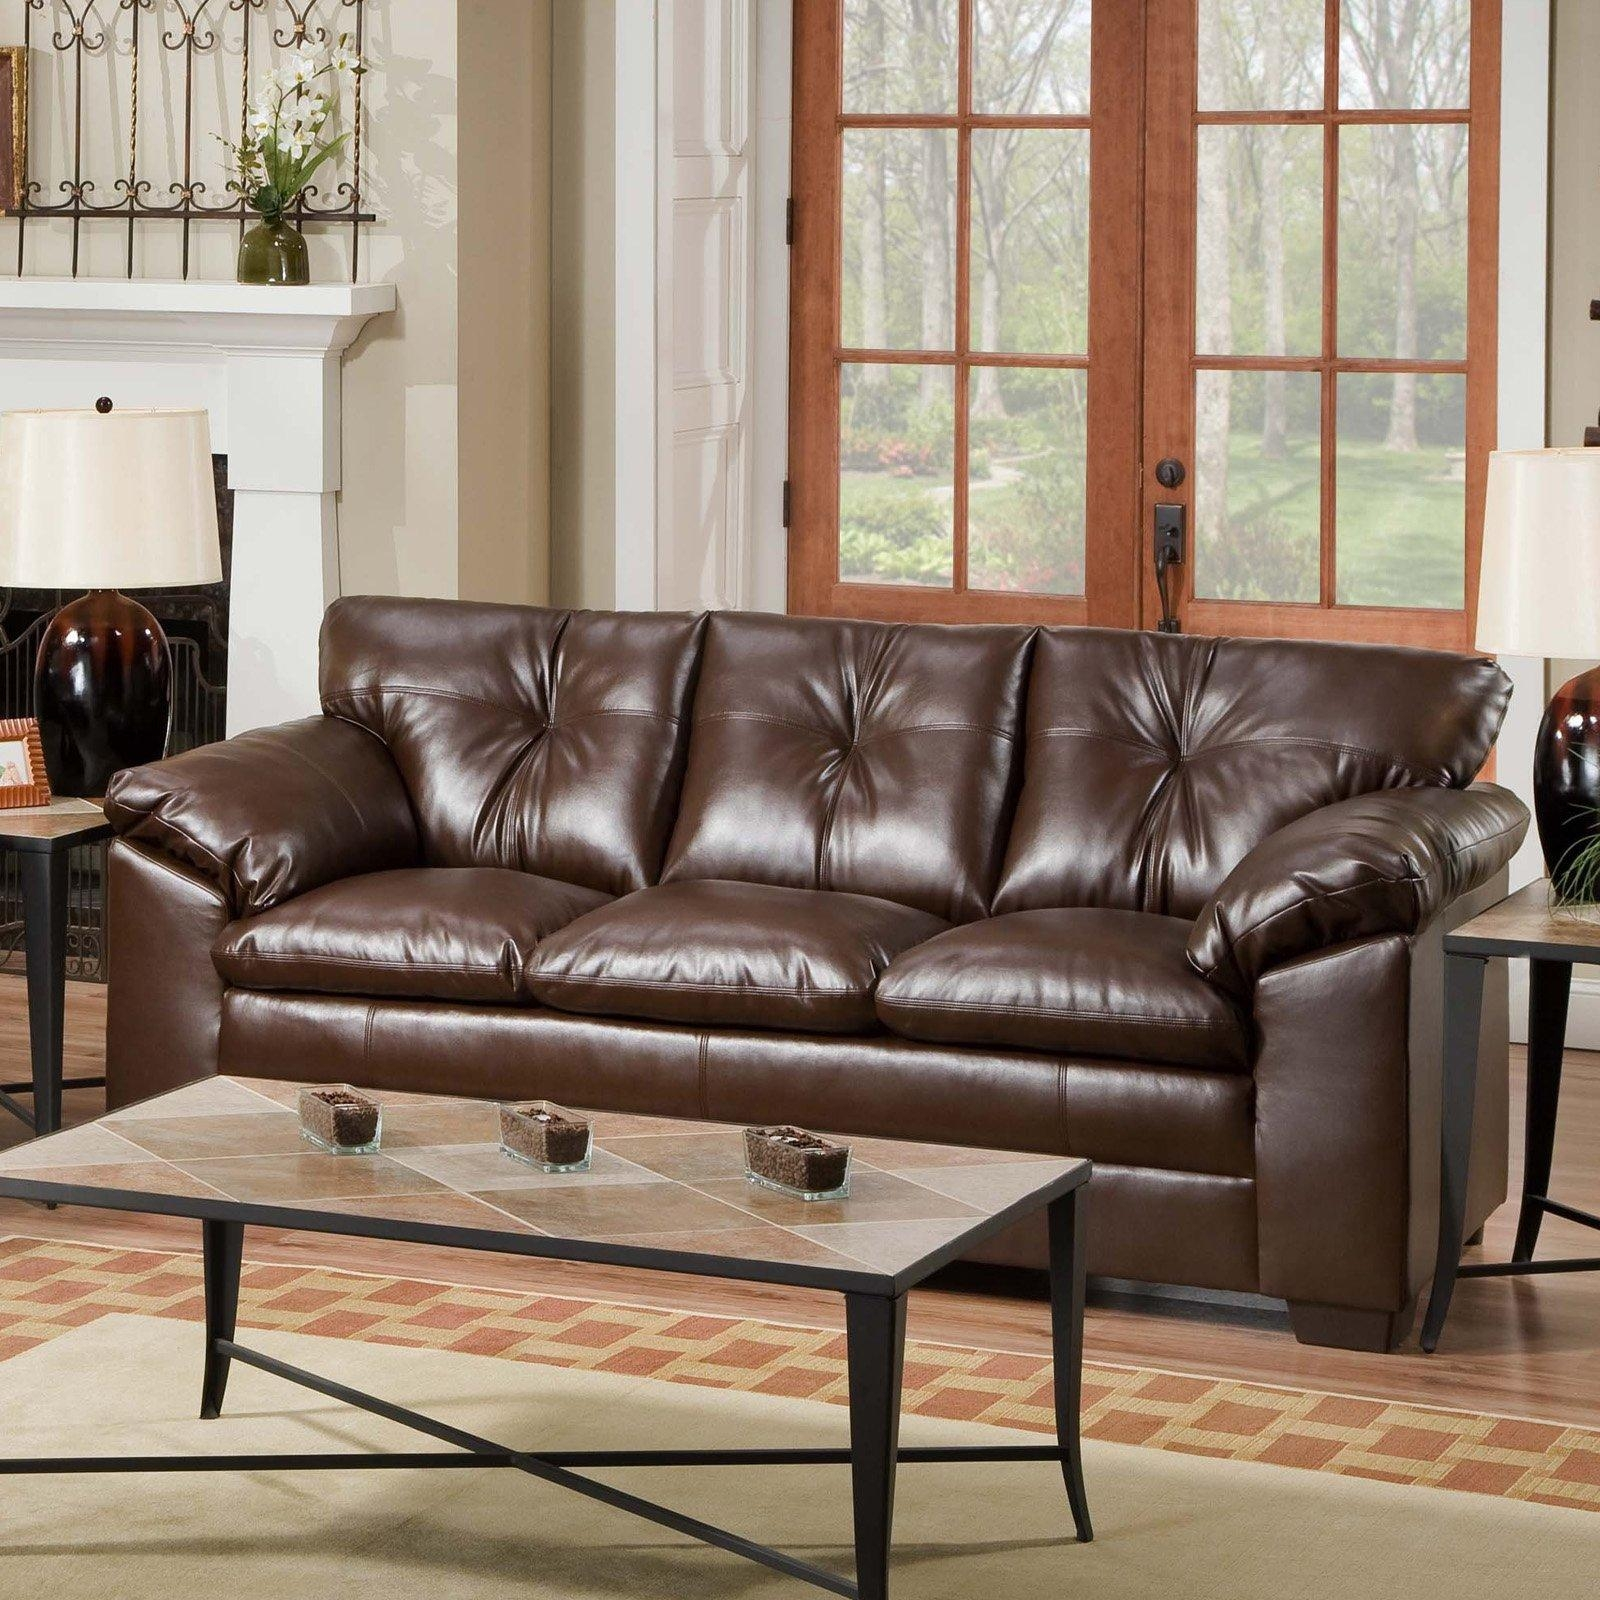 Pictures Of Living Room With Brown Leather Couch – Creditrestore Intended For Simmons Leather Sofas And Loveseats (Image 4 of 20)